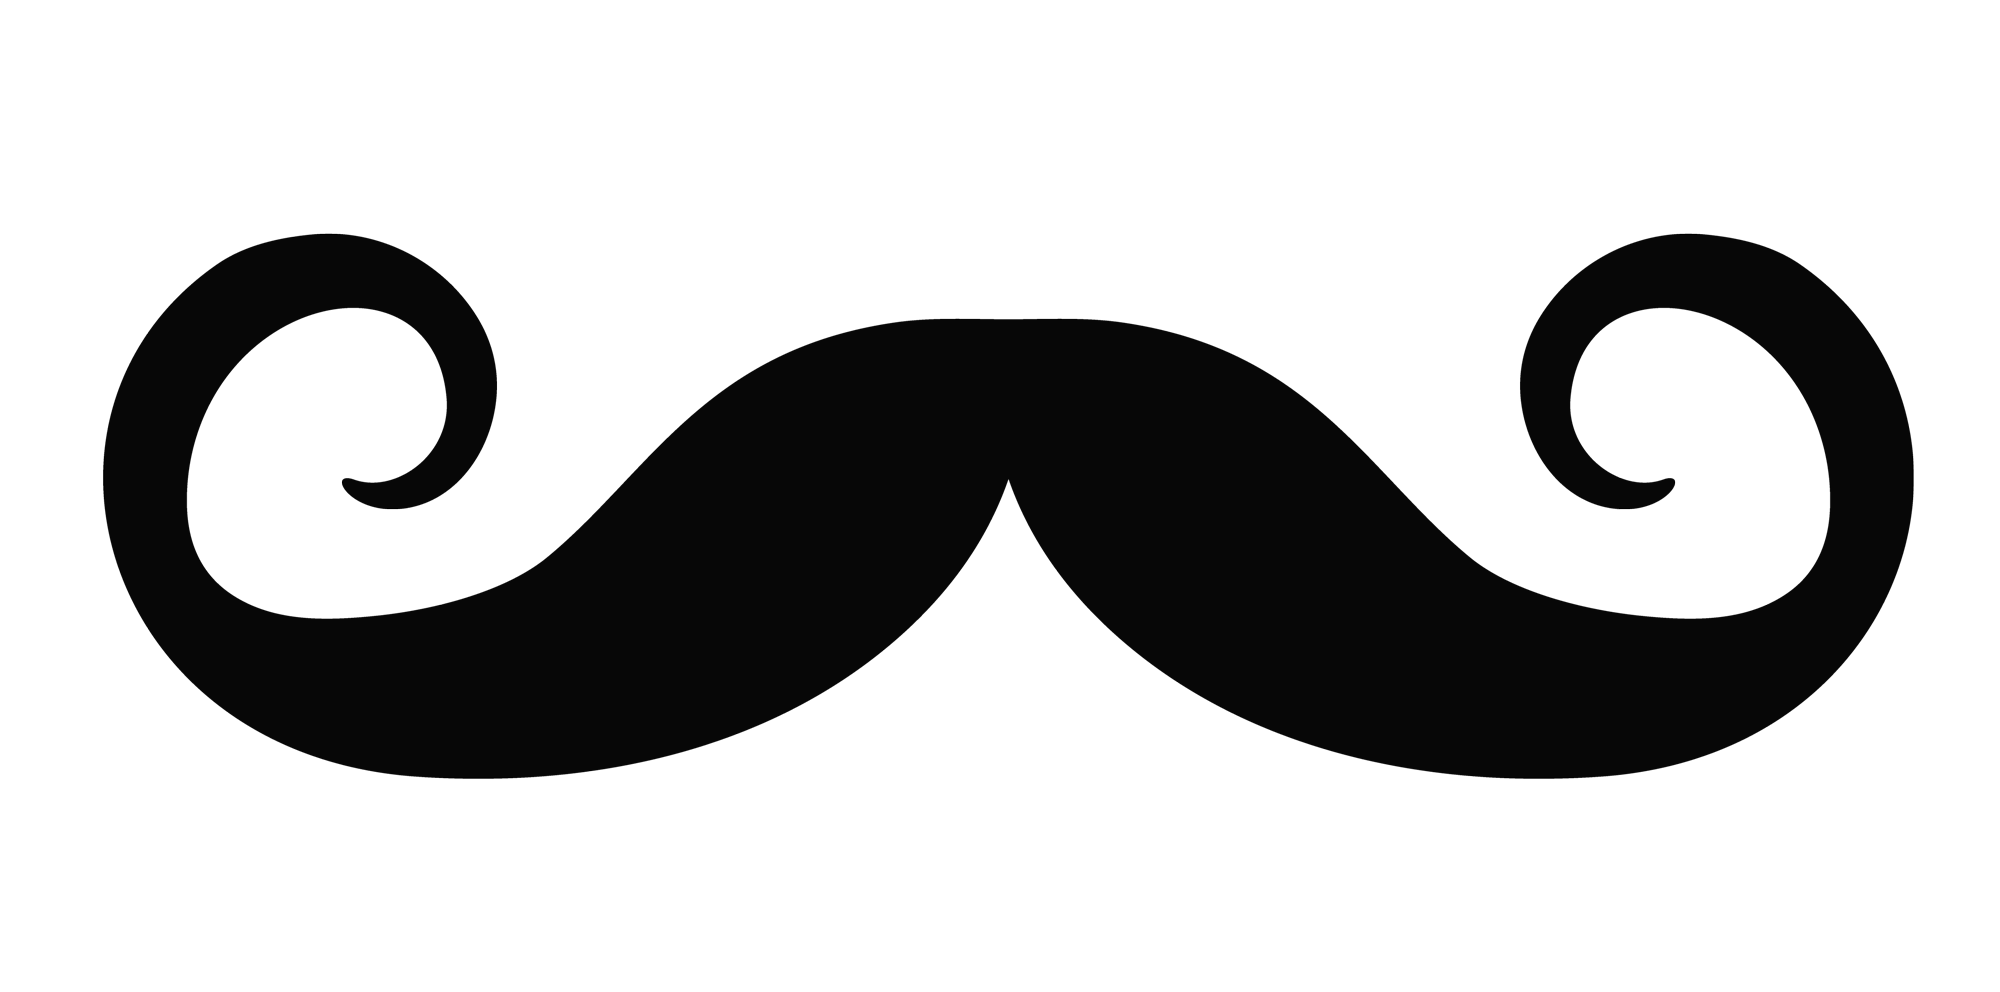 vector royalty free Moustache silhouette at getdrawings. Monocle clipart mario mustache.